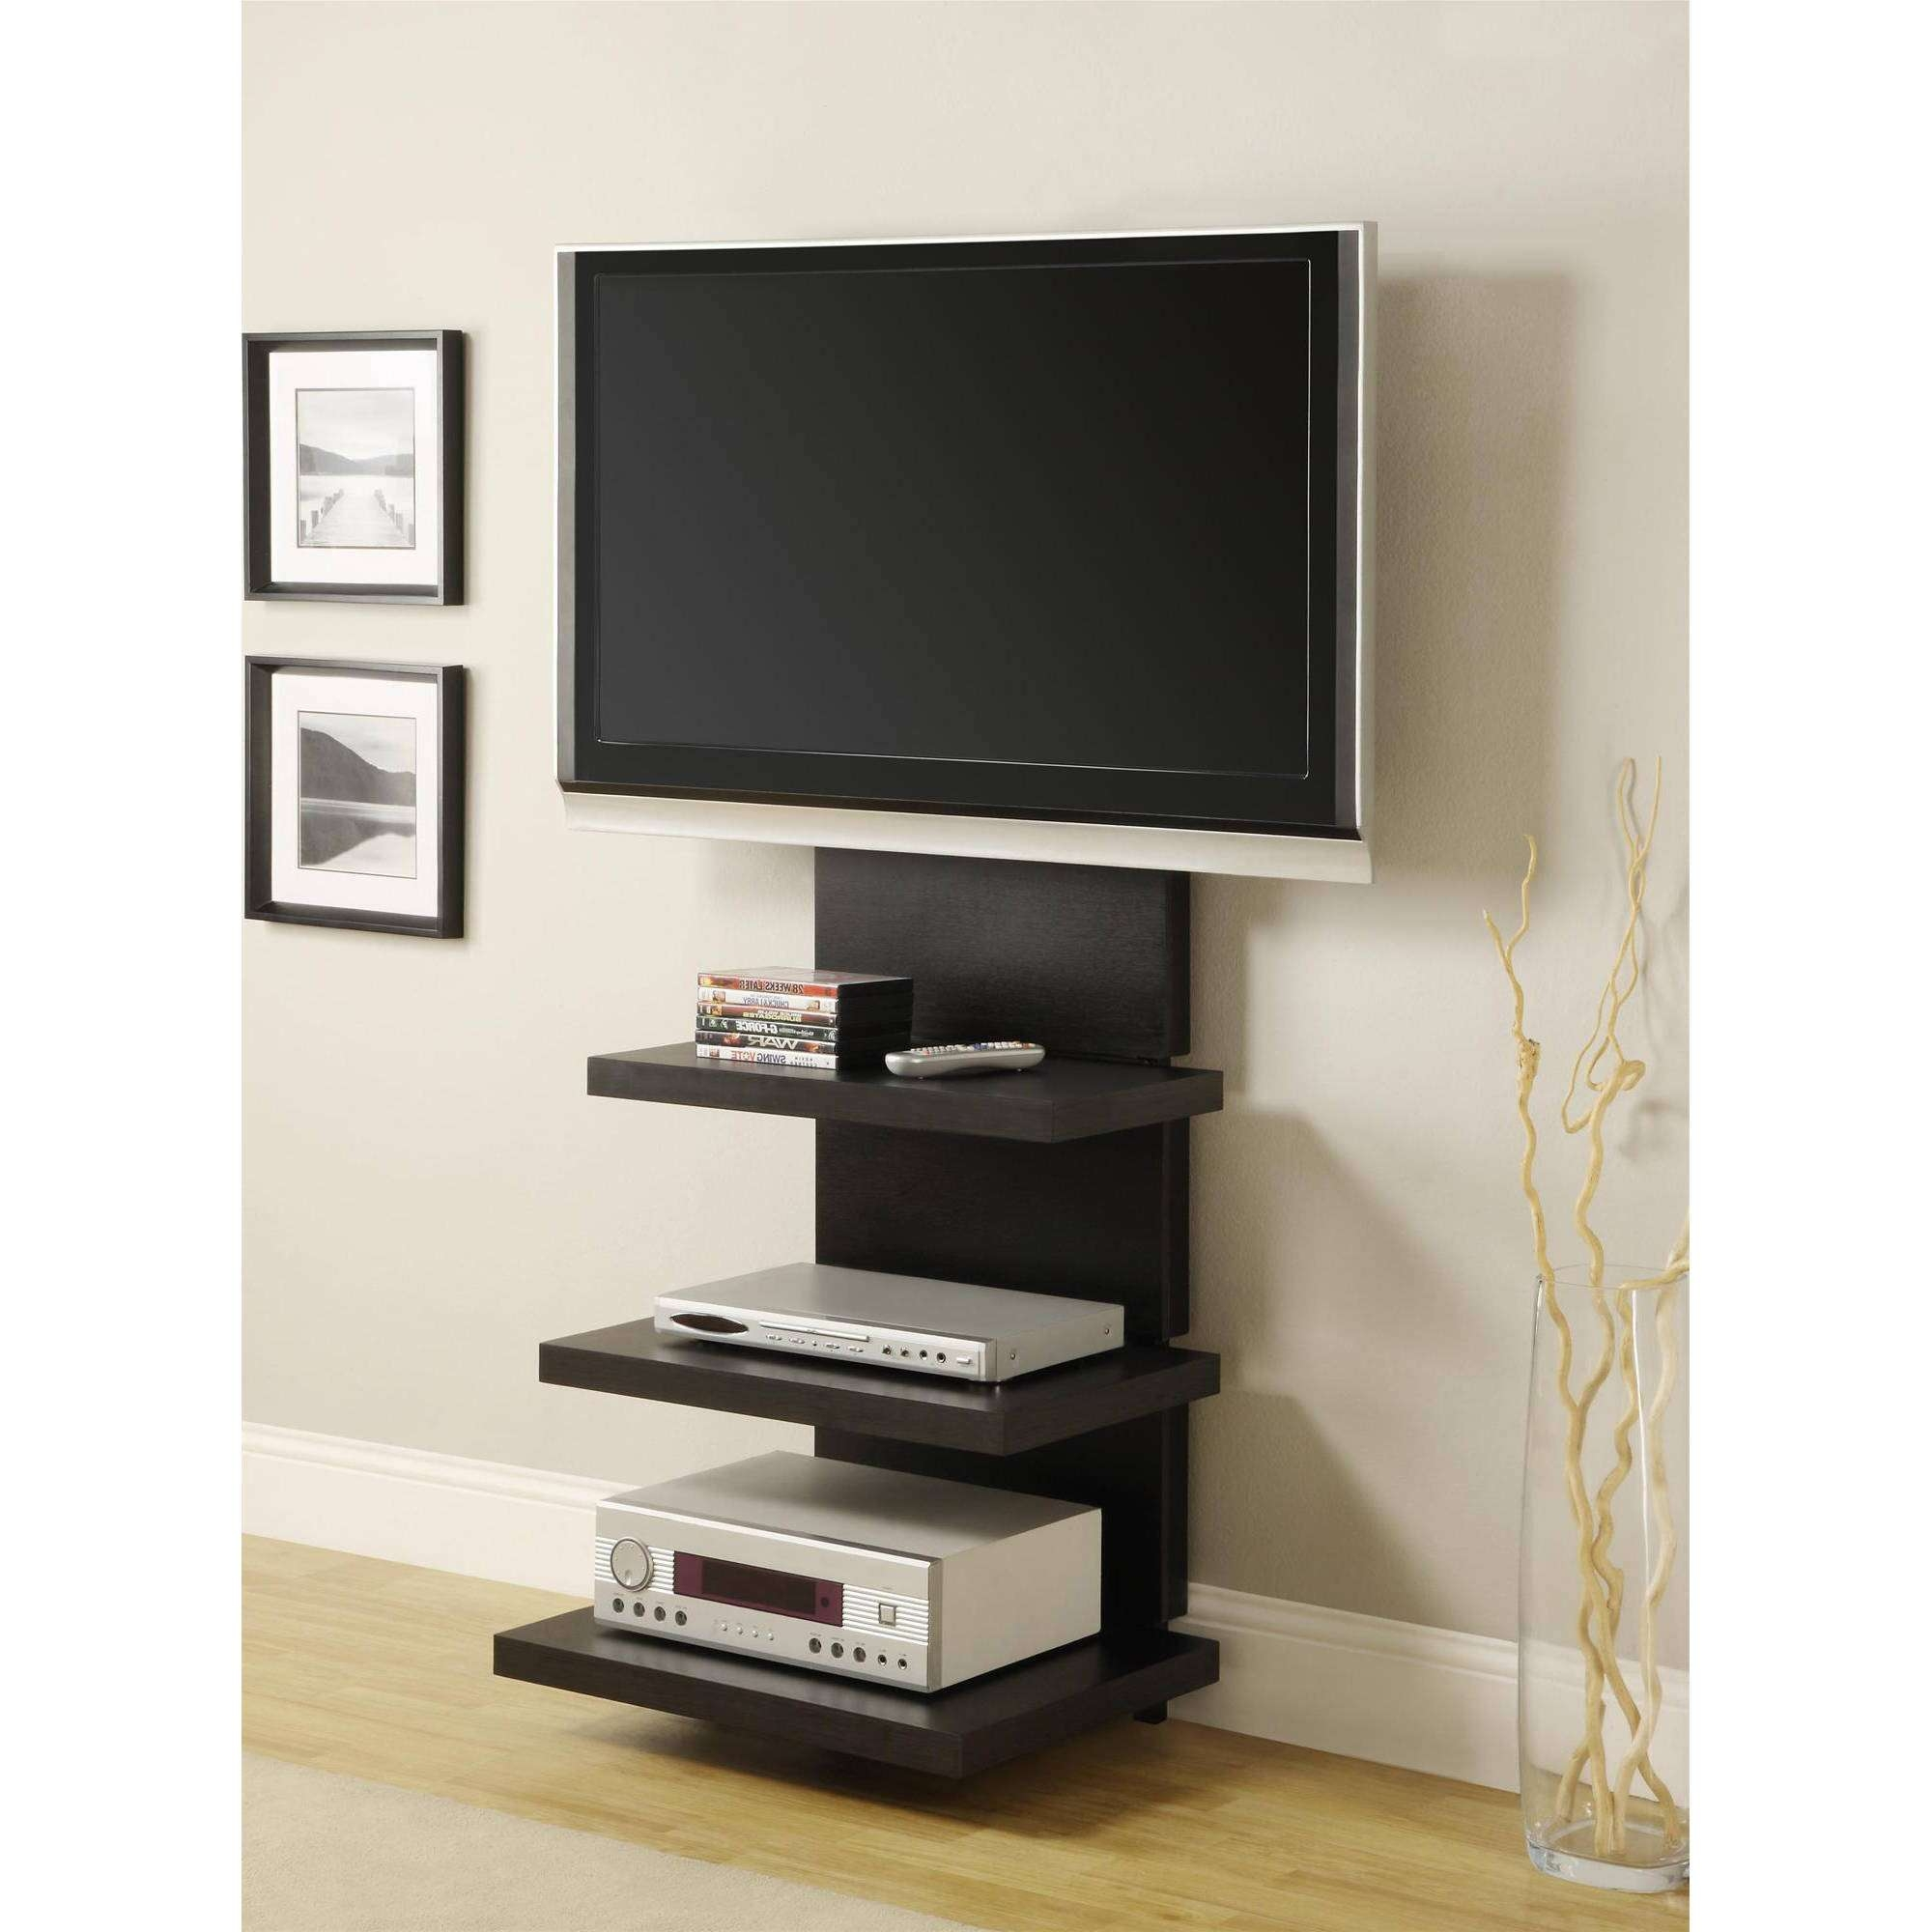 Ameriwood Home Elevation Altramount Tv Stand For Tvs Up To 60 In 24 Inch Corner Tv Stands (View 2 of 15)